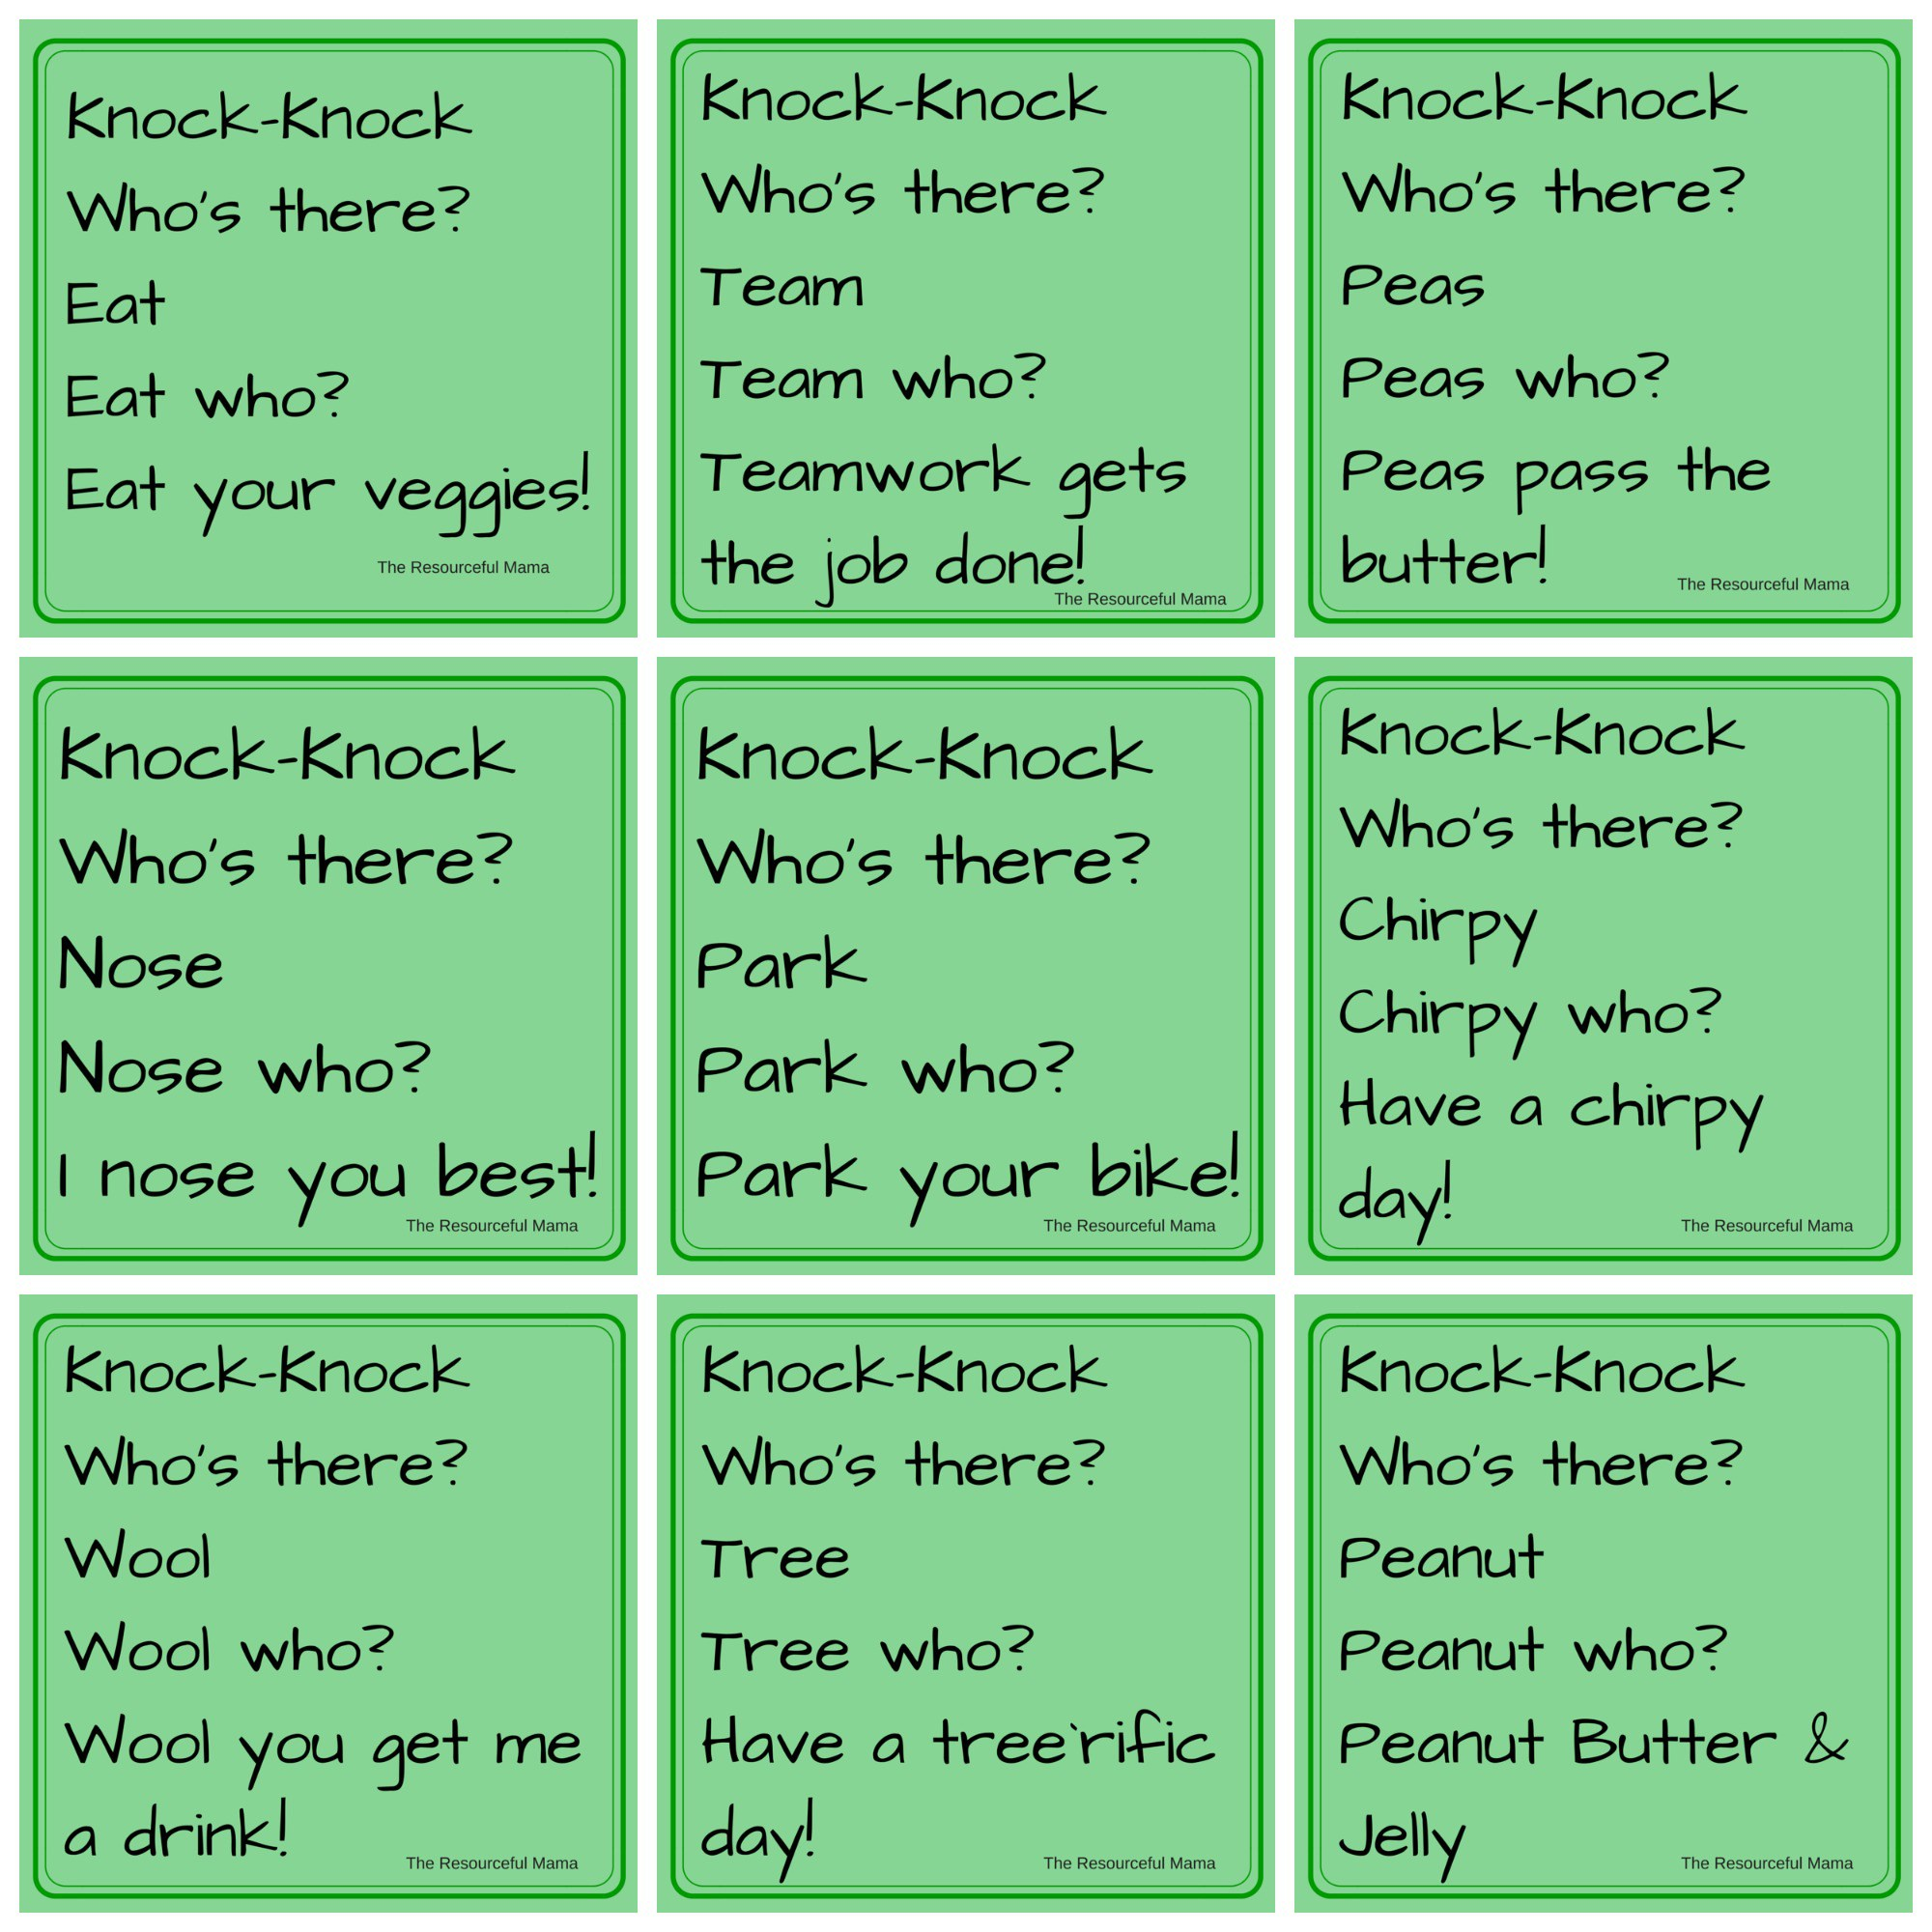 Racist Knock Knock Jokes